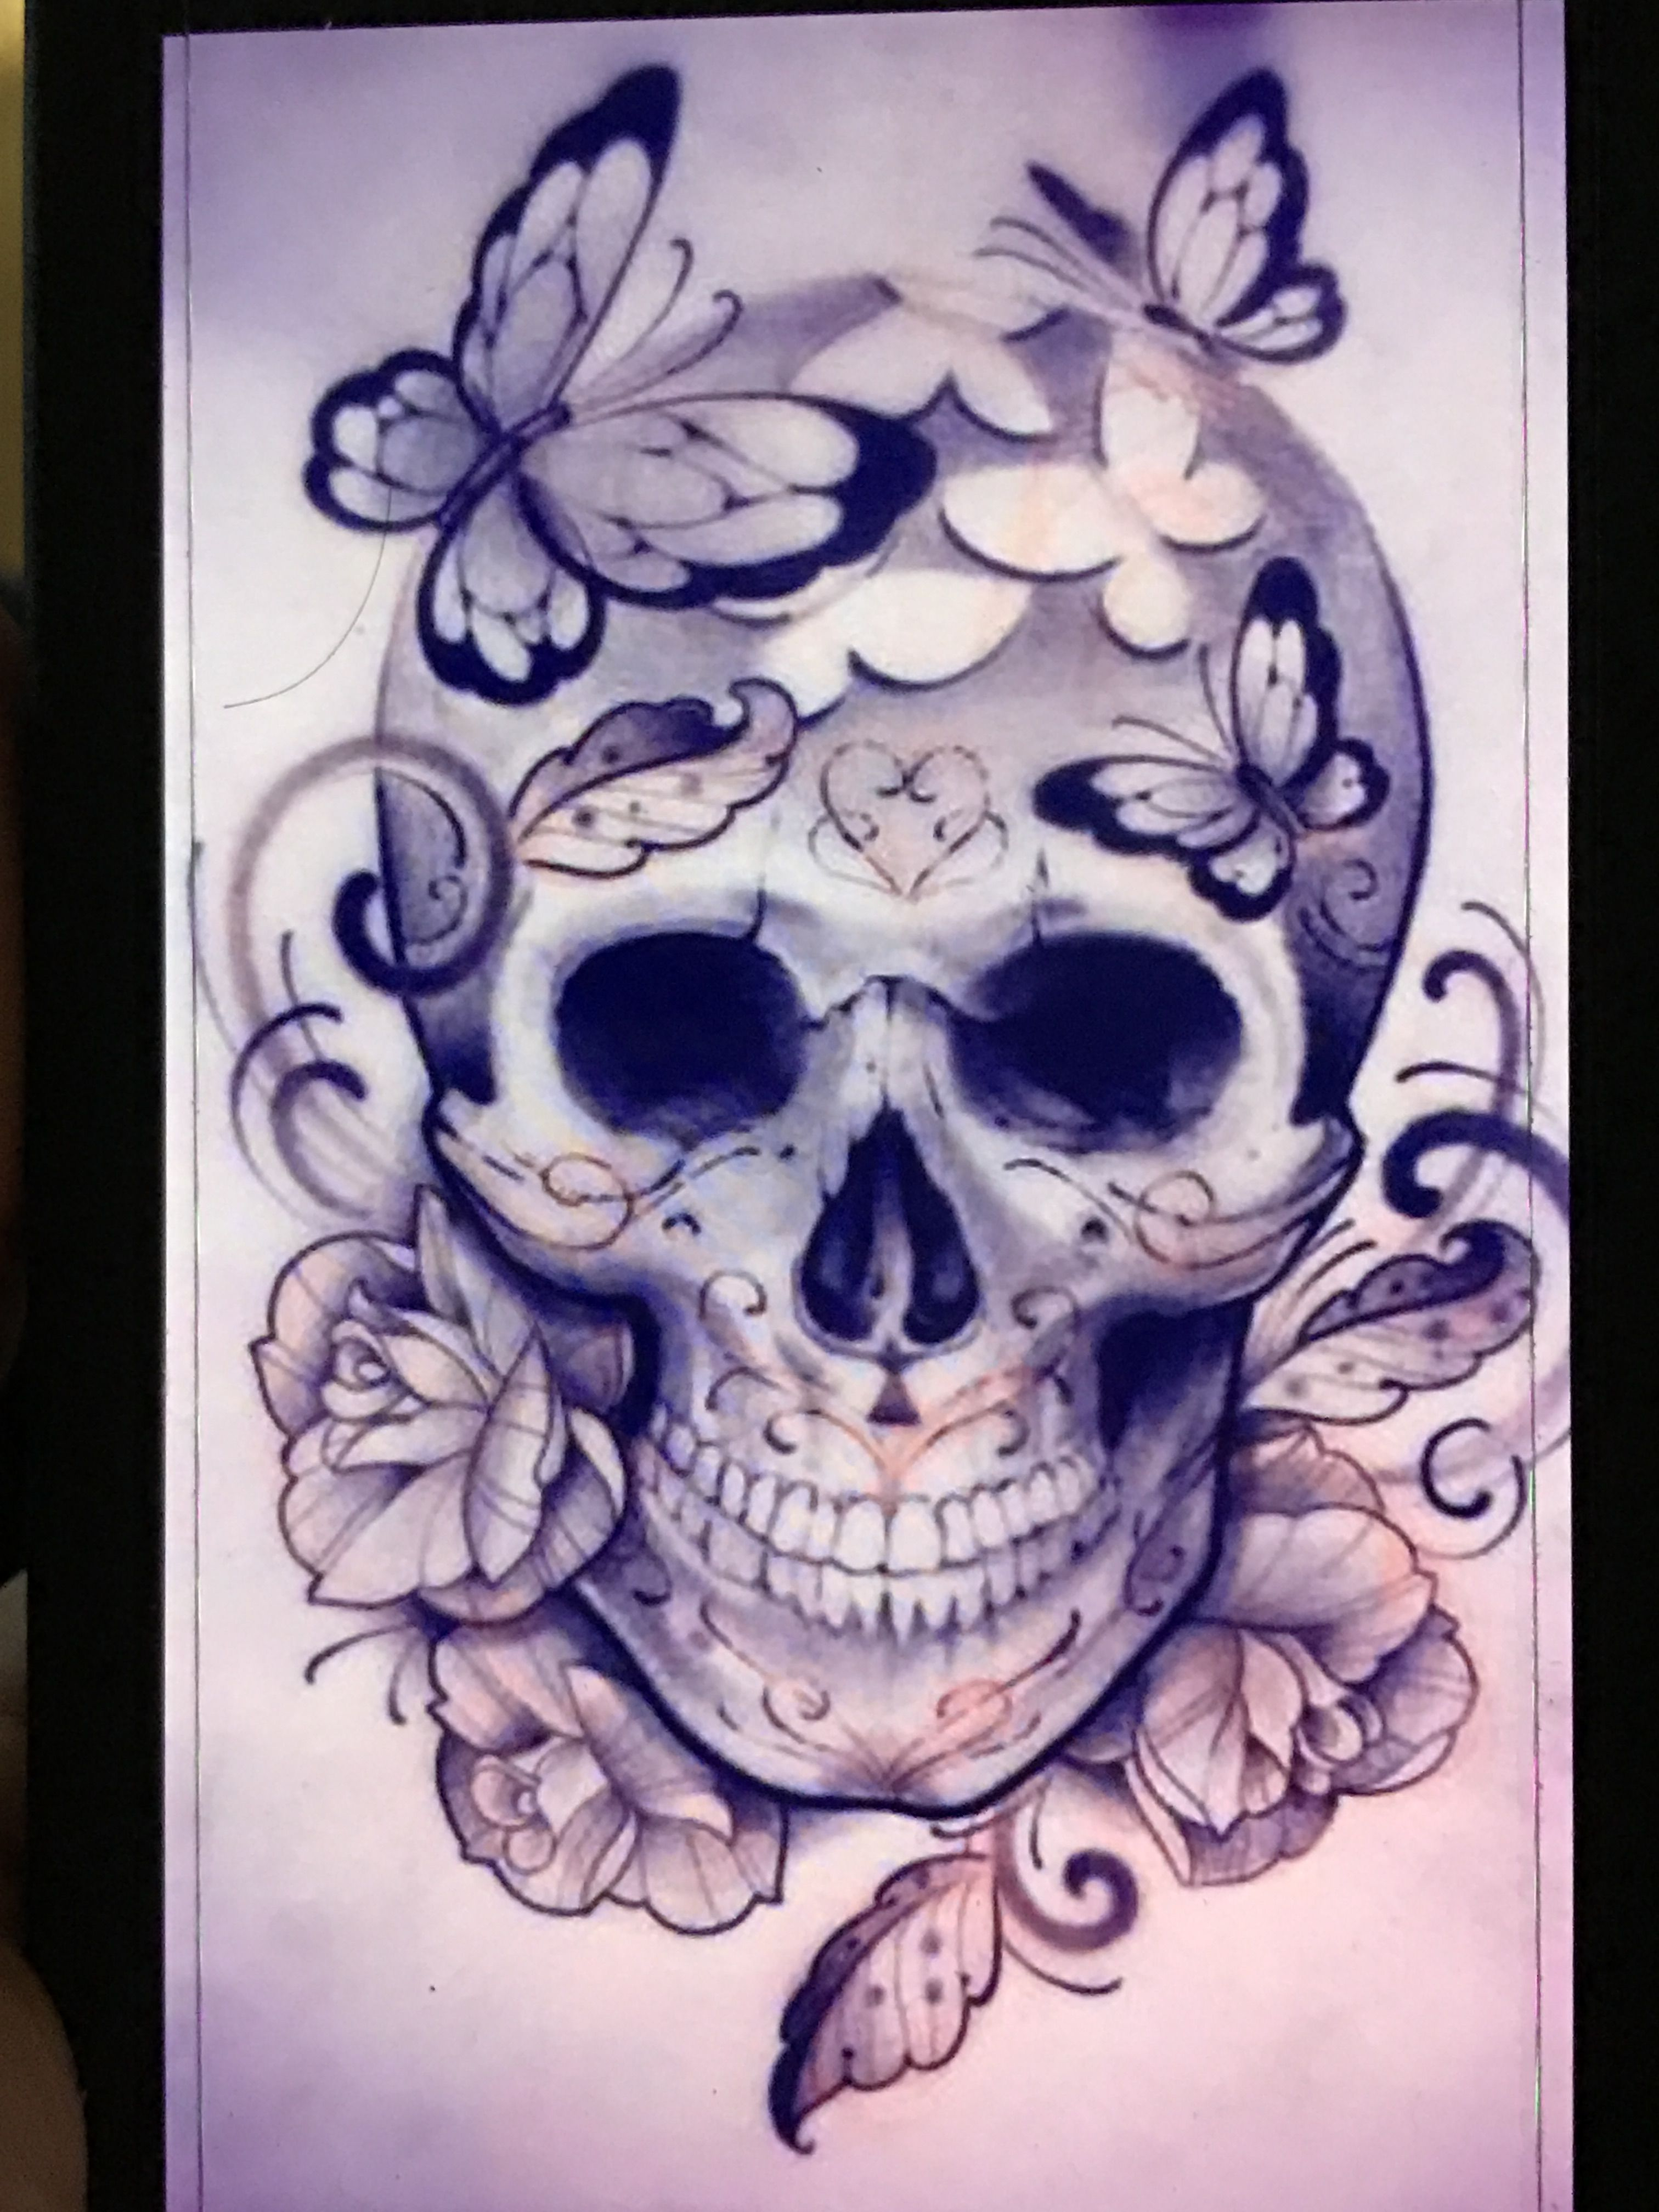 Pin by Amylyn Carter-Besse on Tattoos   Pinterest   Tattoo ...